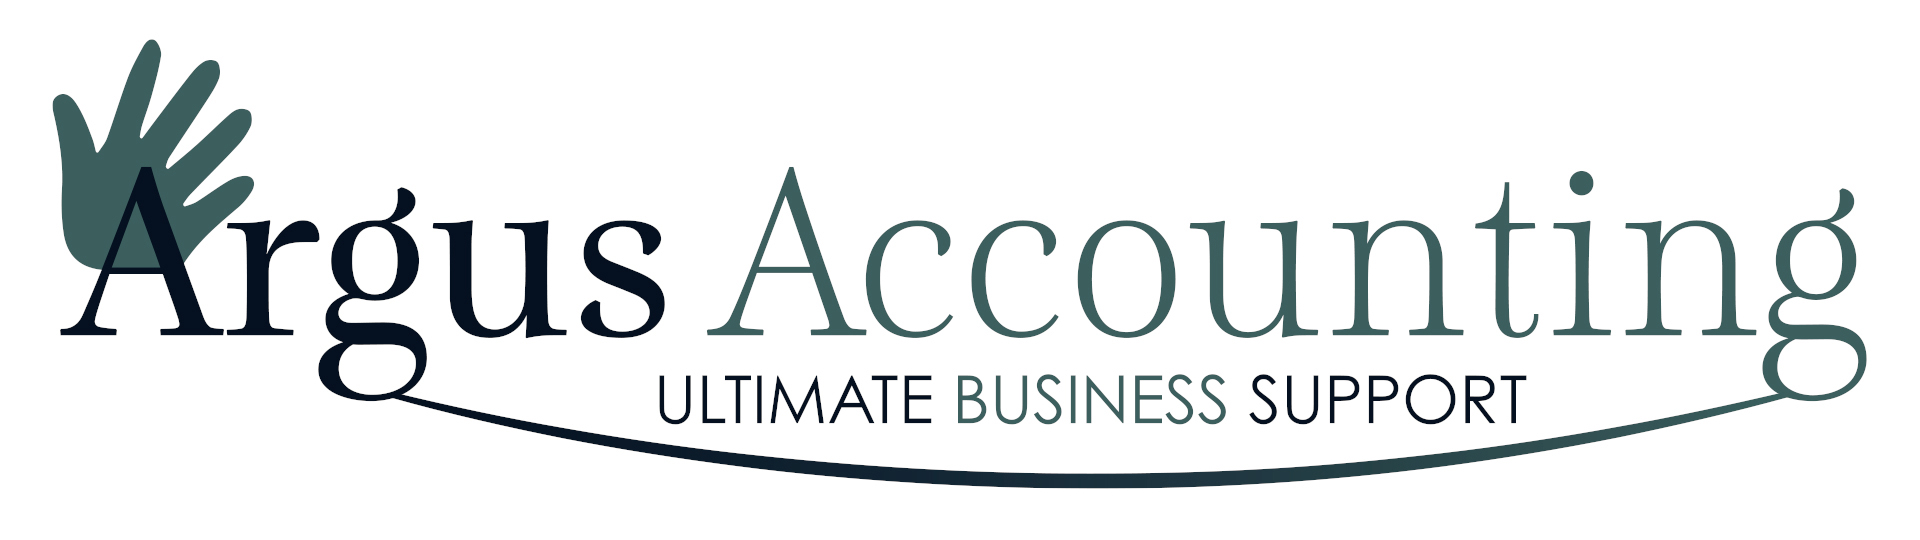 New logo designed for Argus Accounting